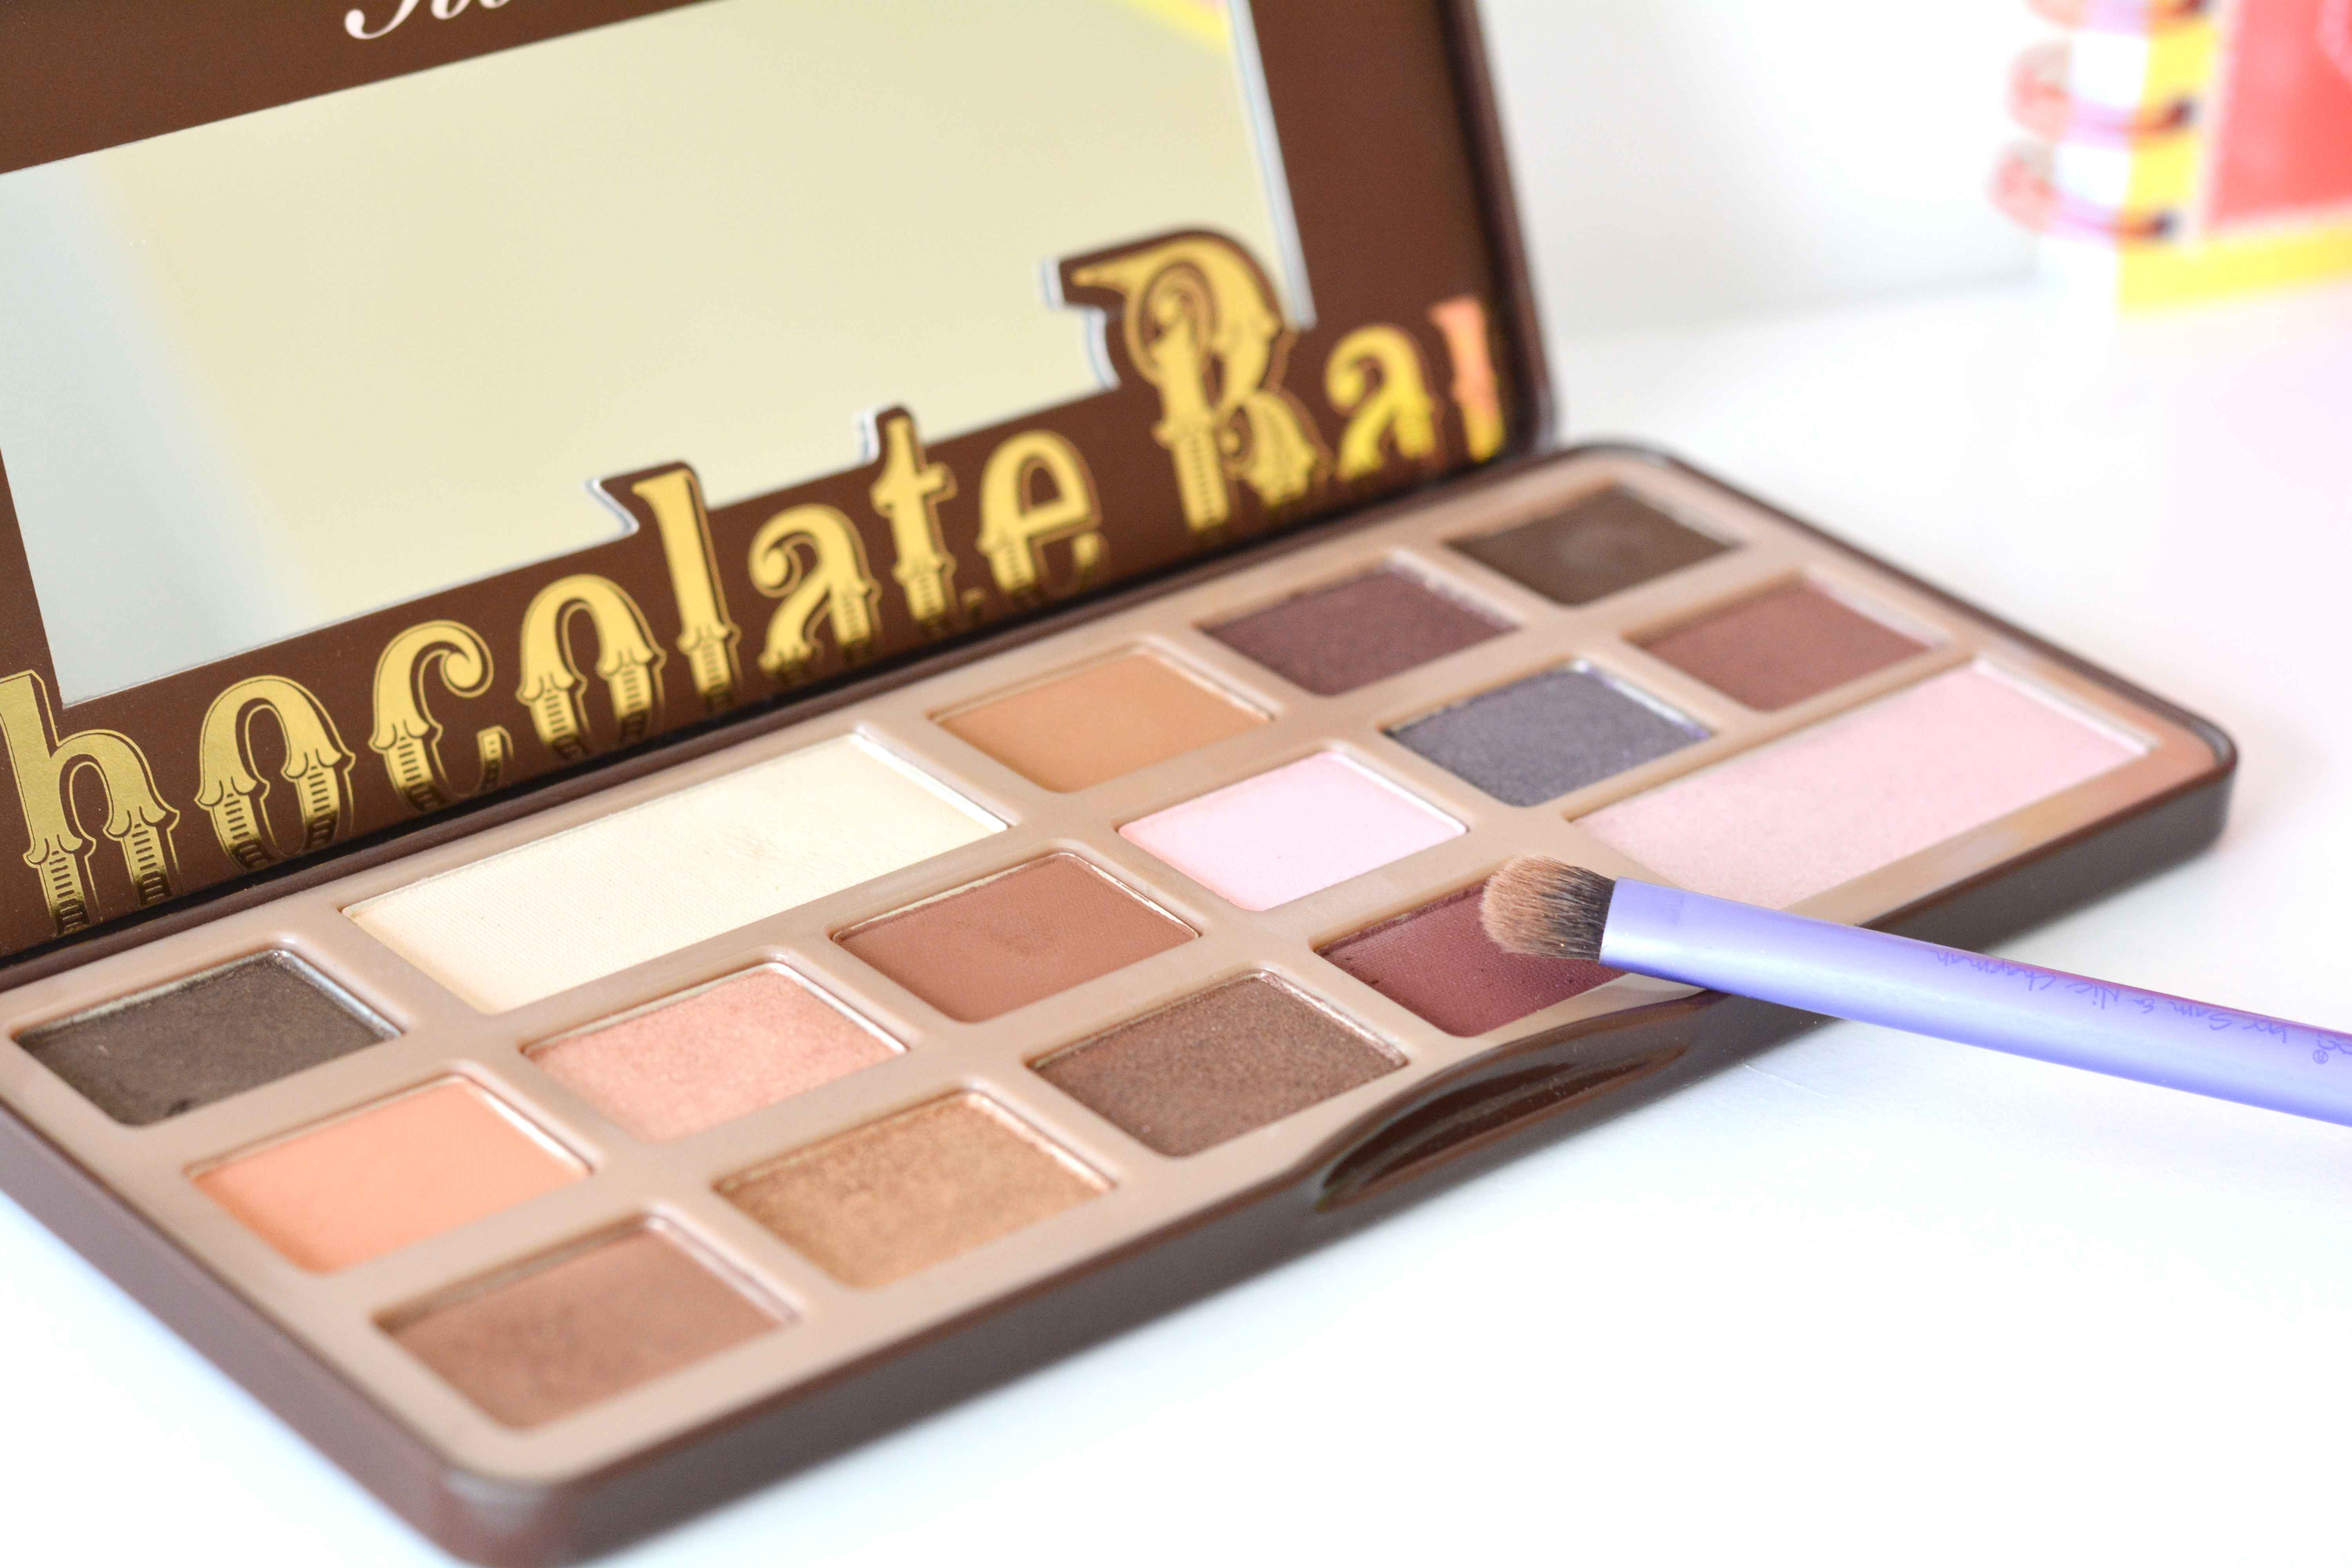 Back-to-school-selection-makeup-chocolate-bar-too-faced